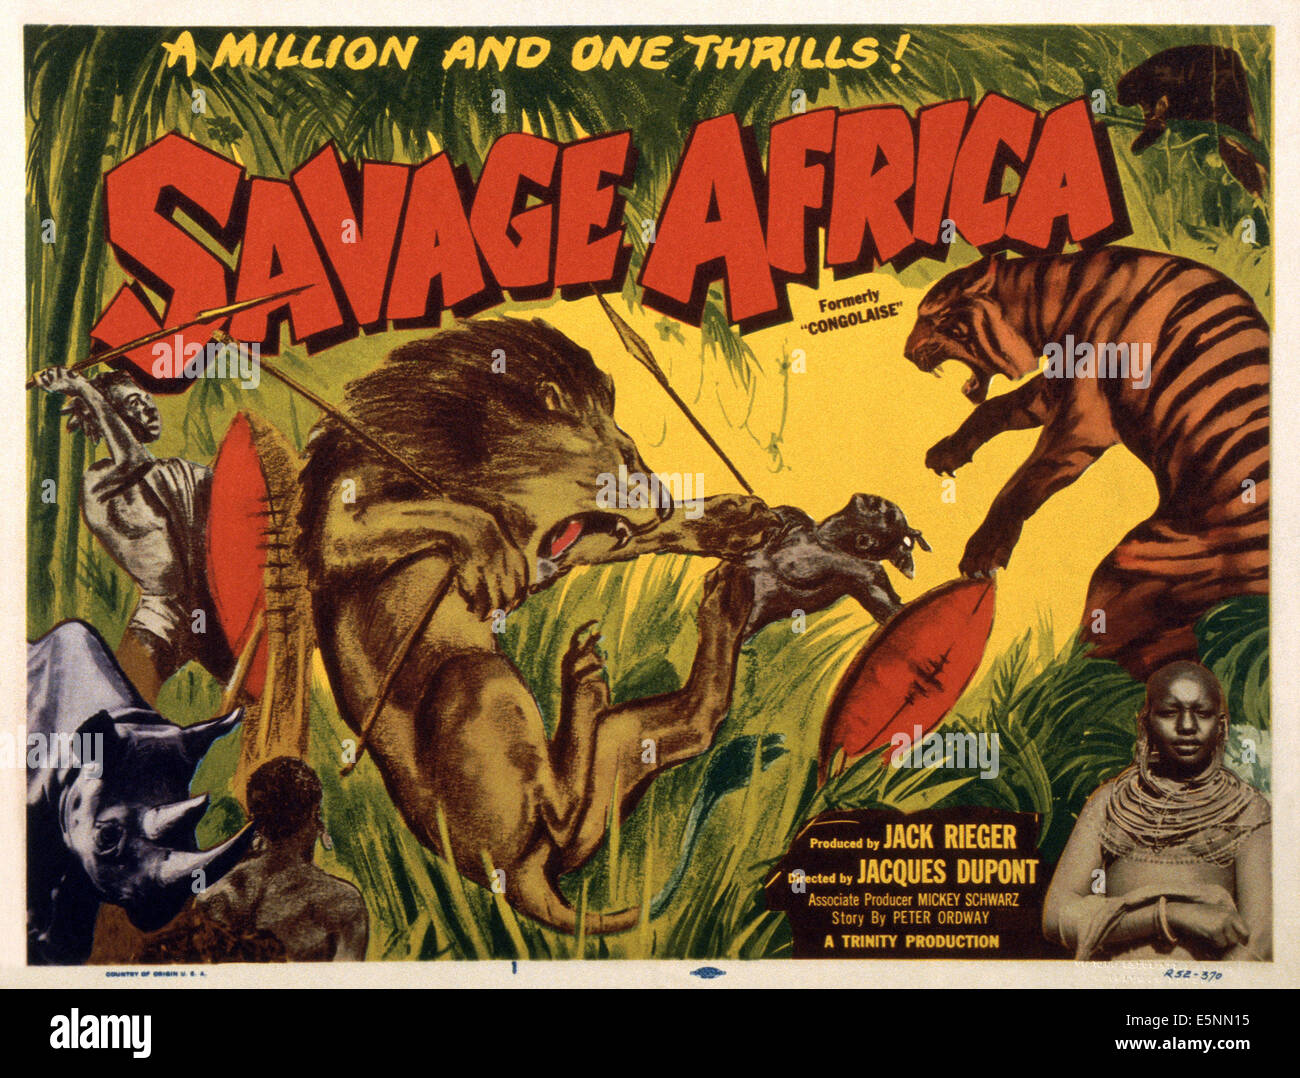 Image result for CONGOLAISE (SAVAGE AFRICA) (1950)